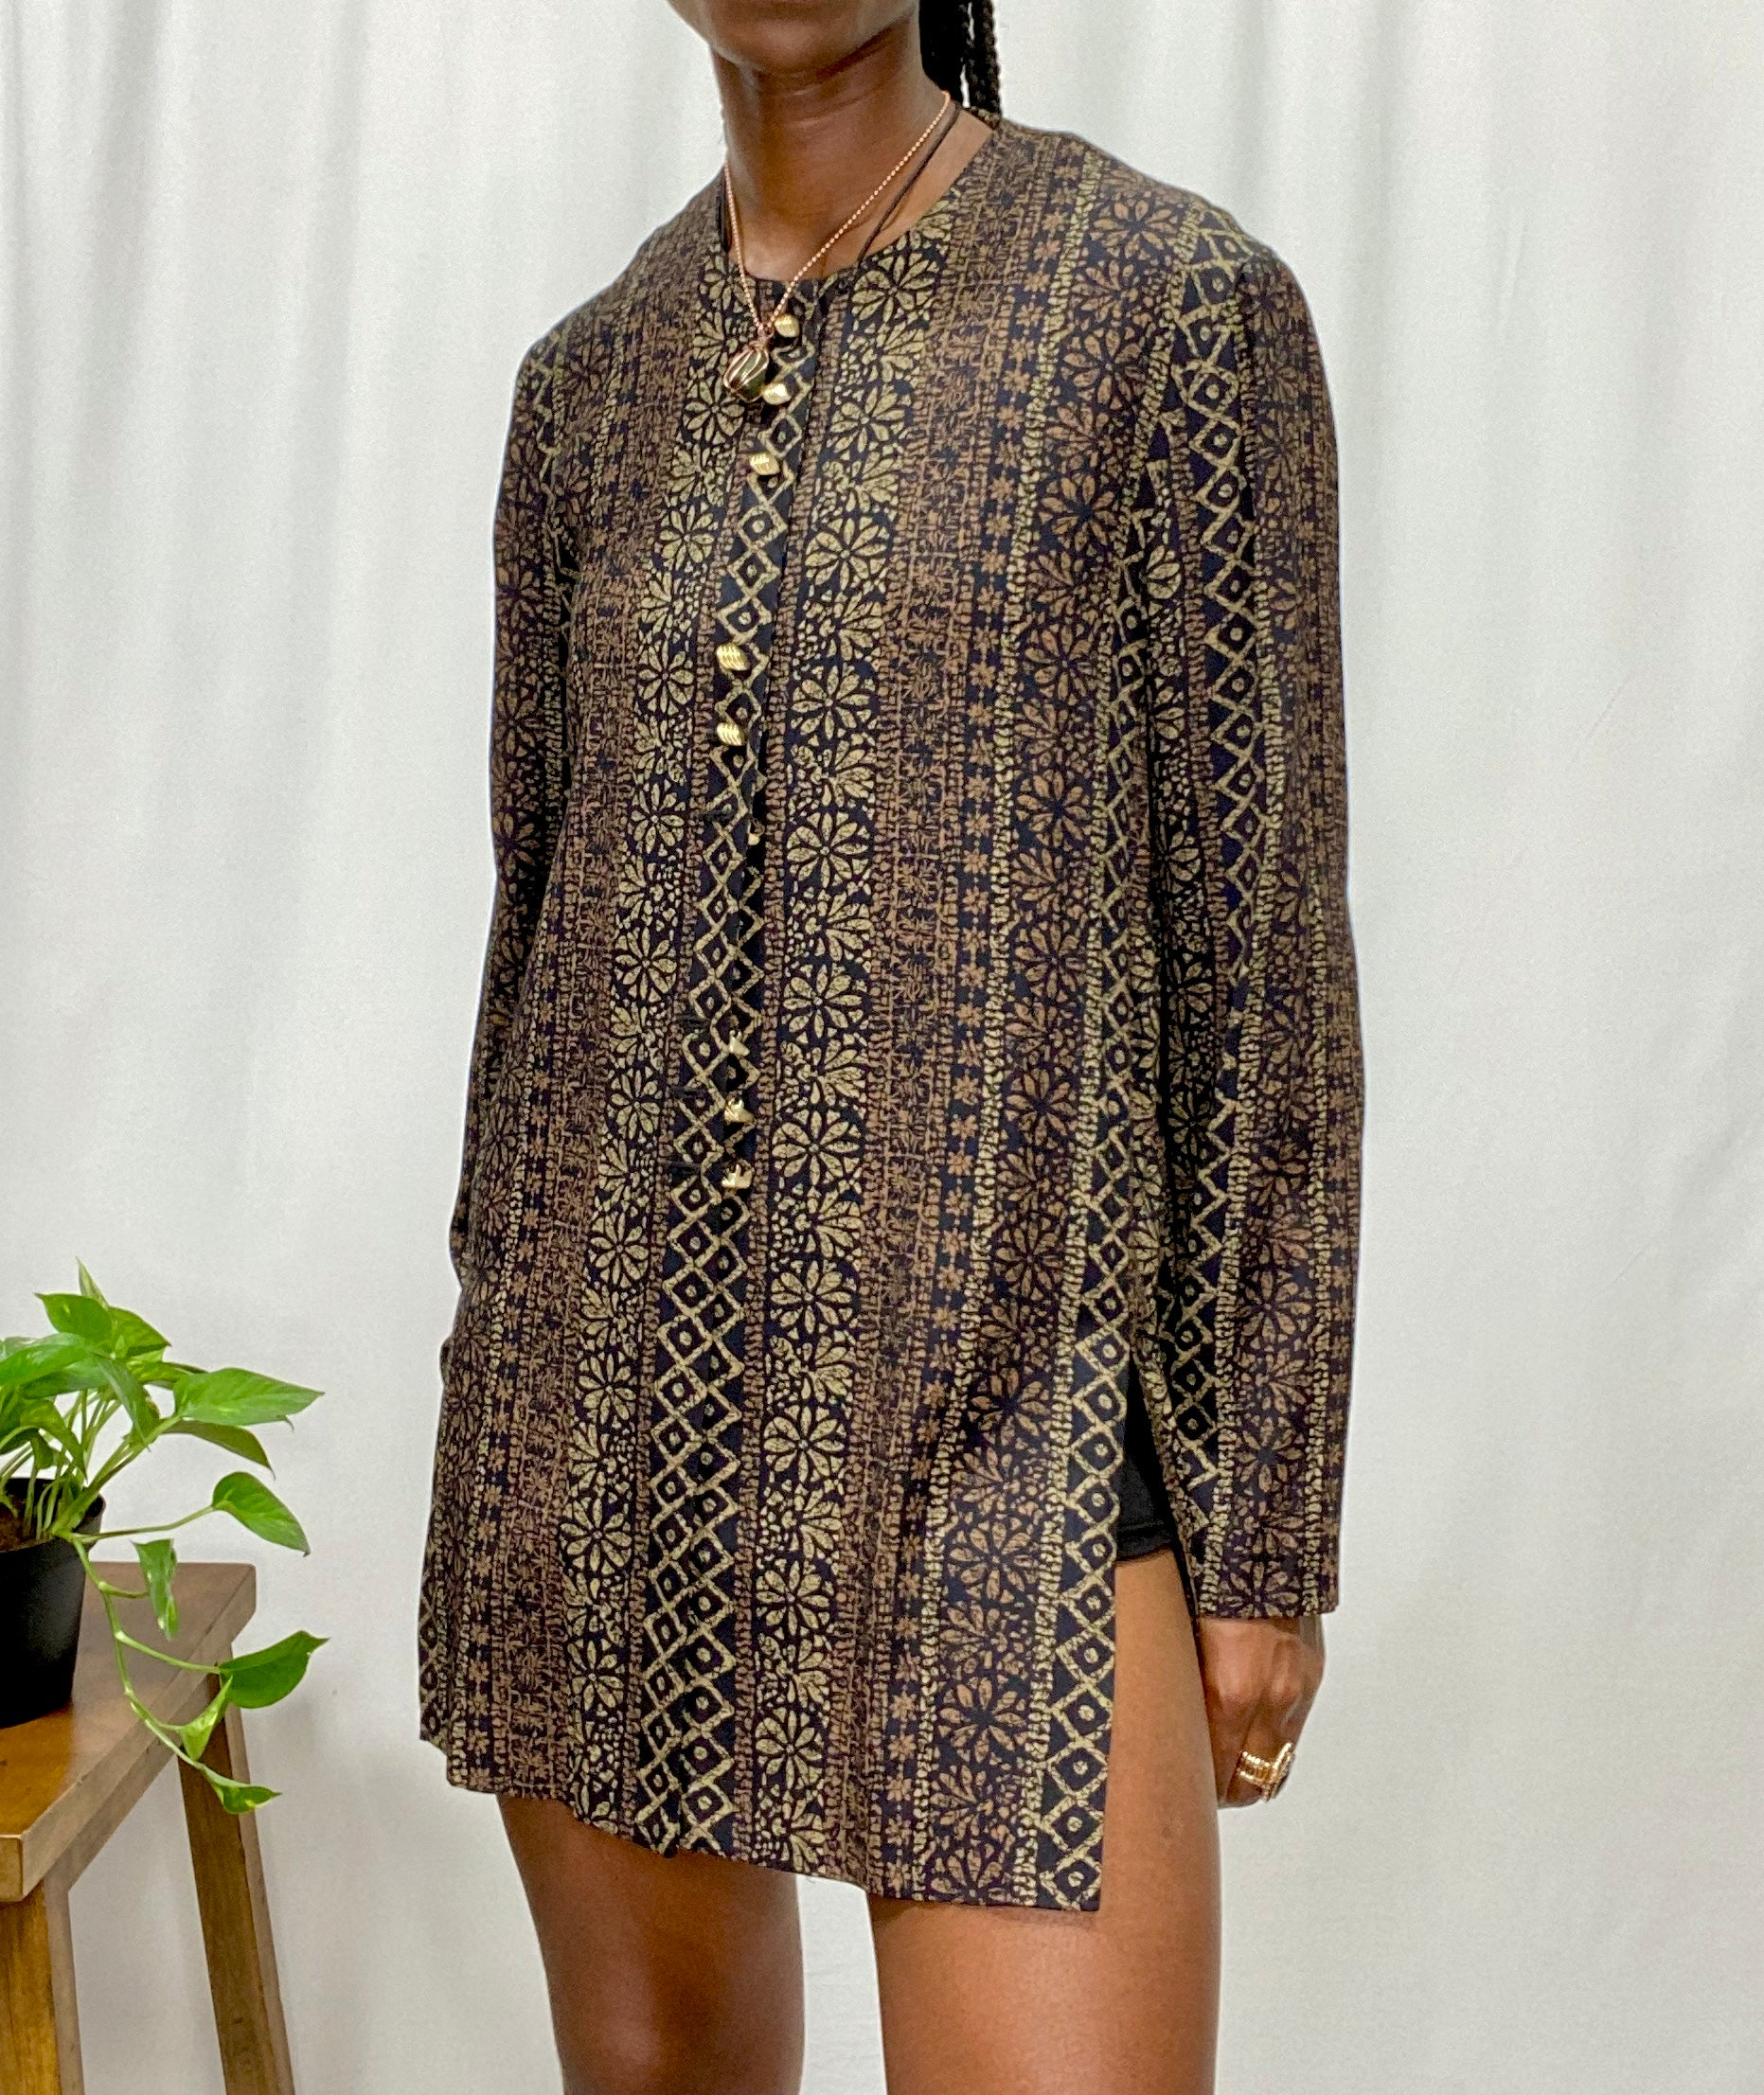 Brown & Black Printed Button Up Blouse